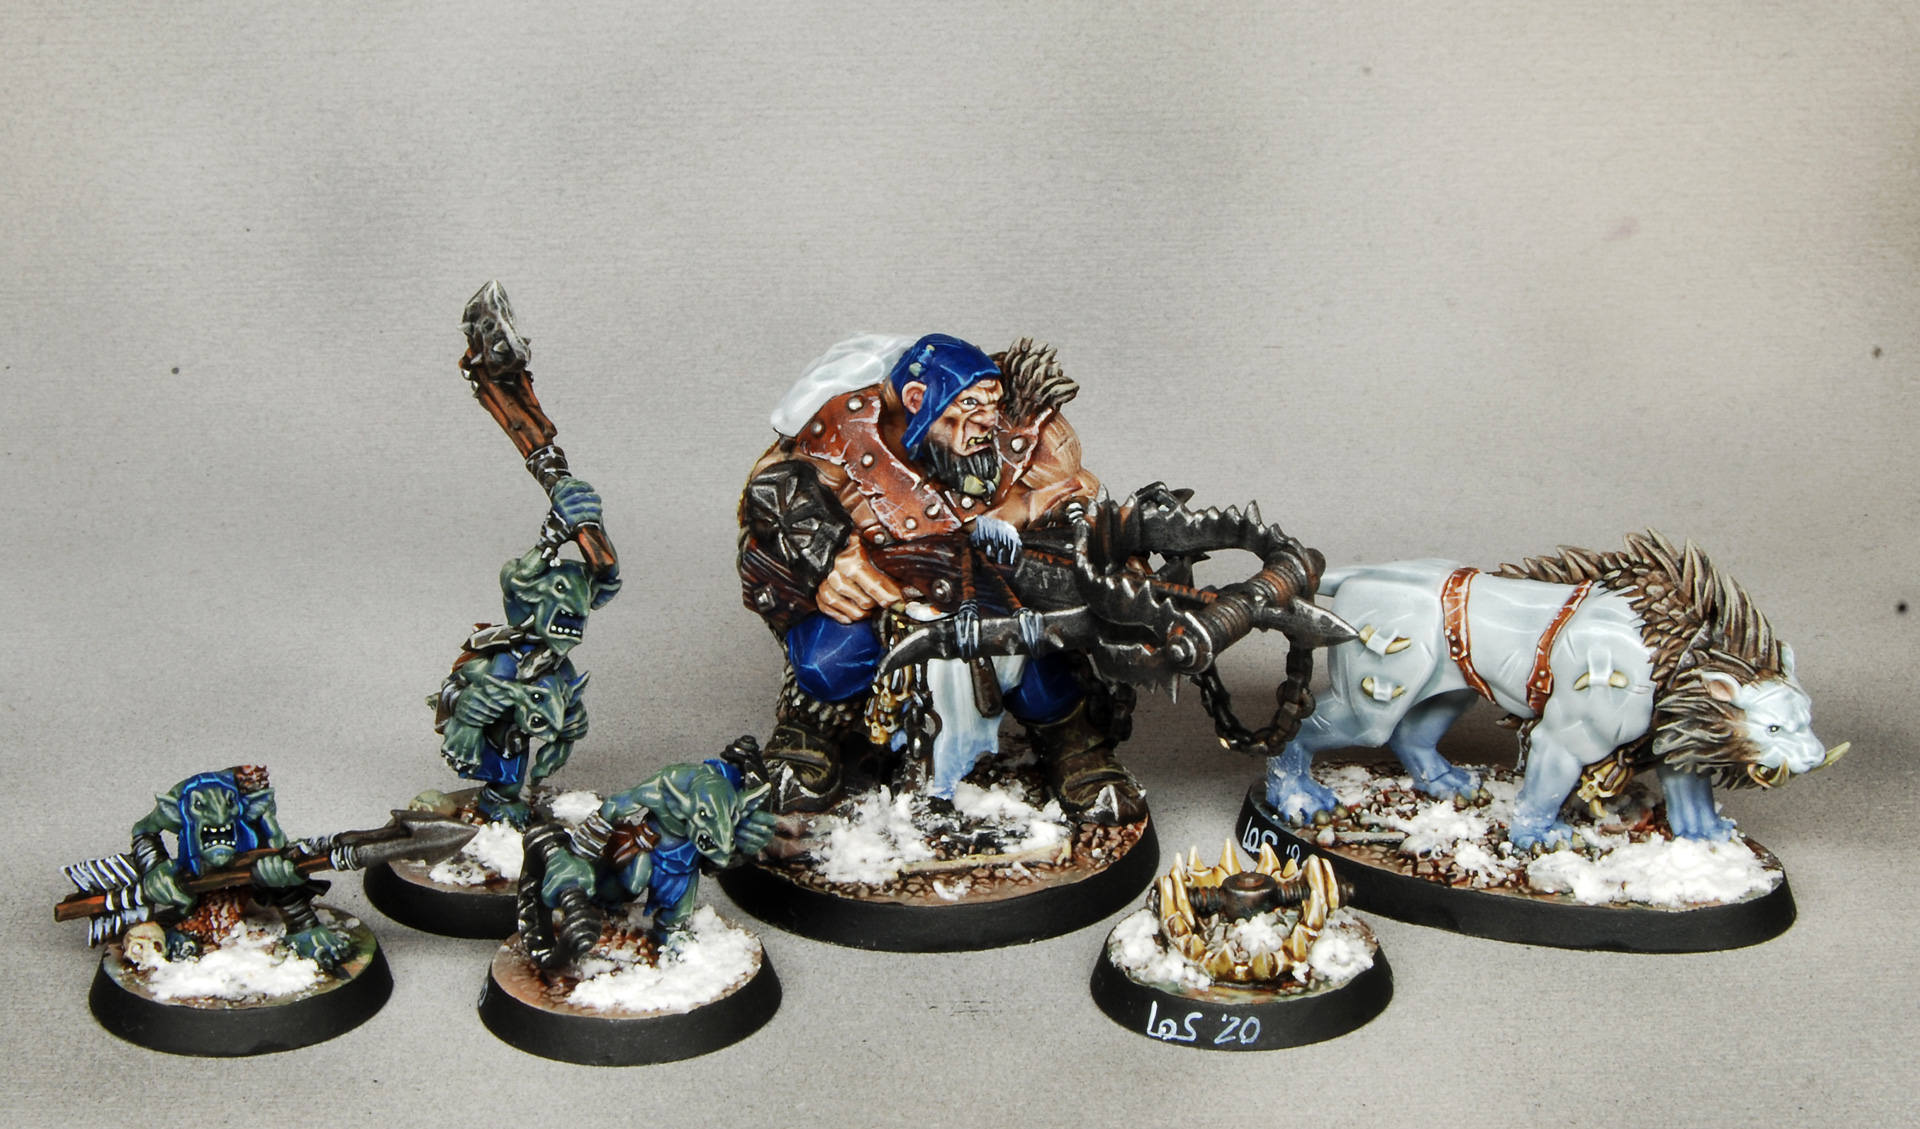 Hrotgorn's Mantrappers